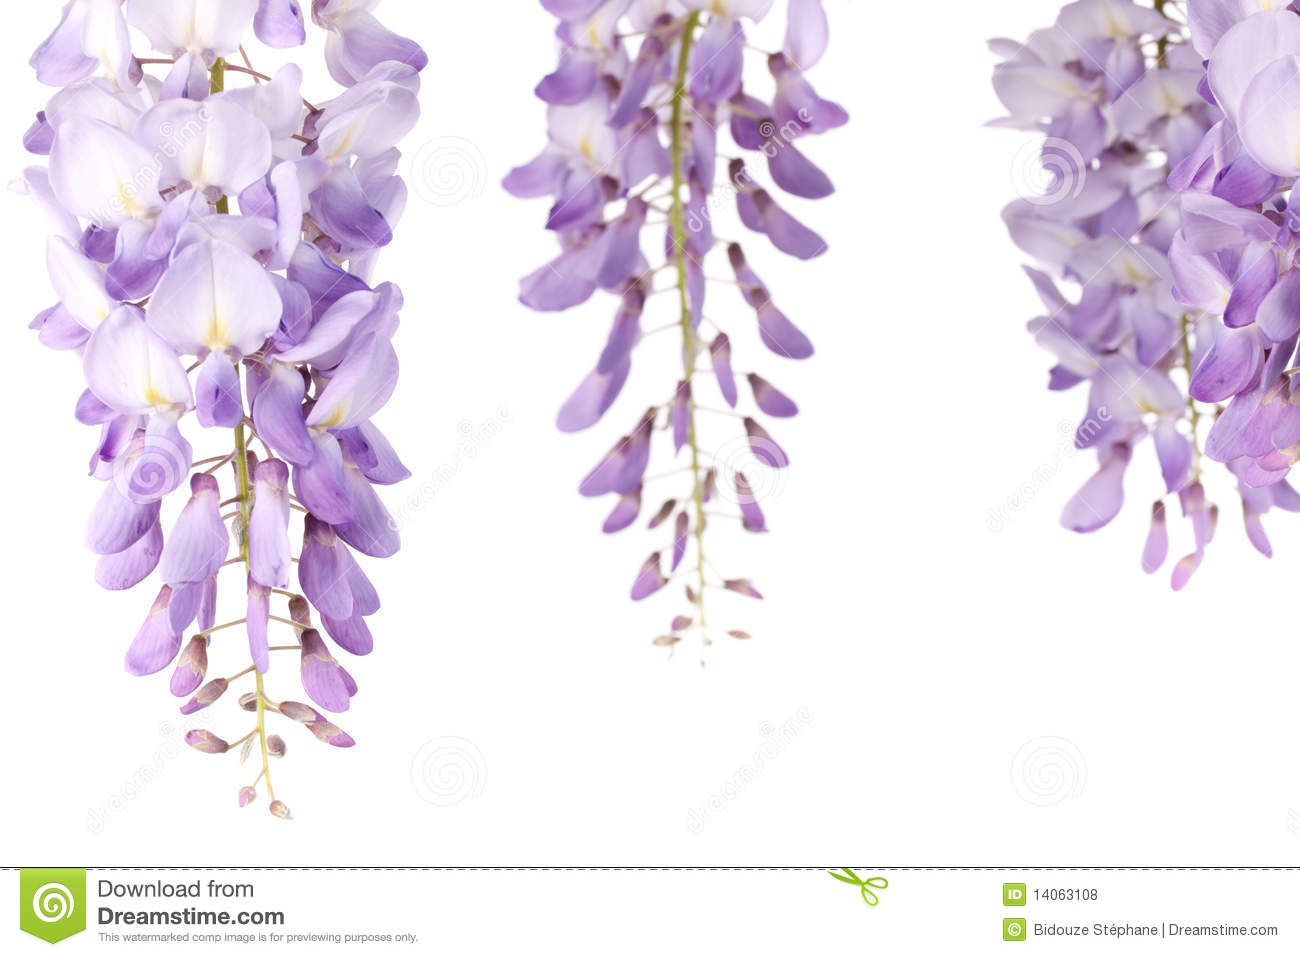 Wisteria flowers royalty free stock photos image 14063108 for Photographie de stock